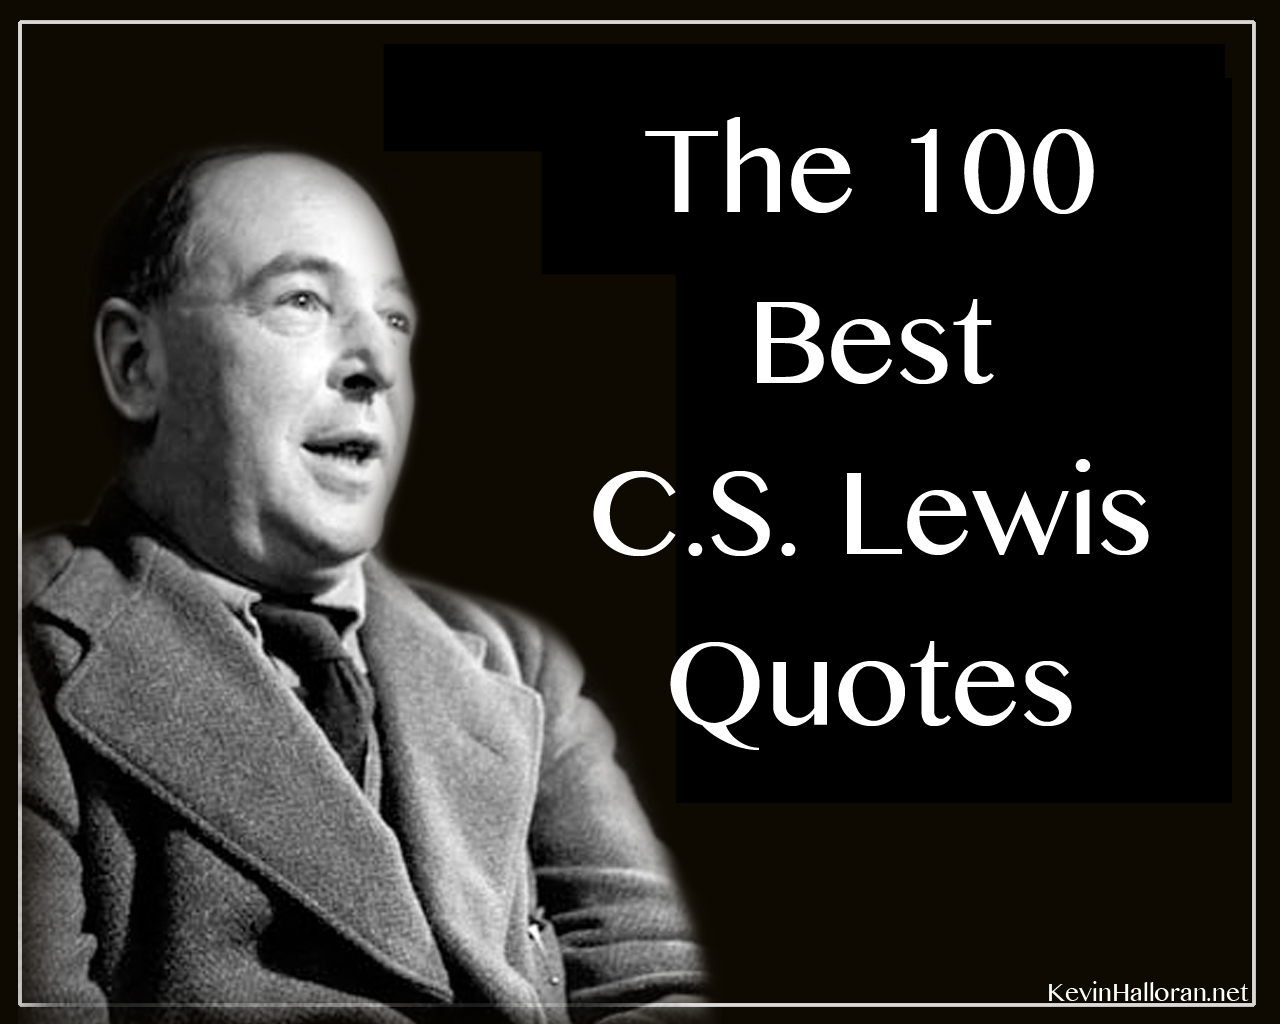 Christian Love Quotes For Him The 100 Best C.slewis Quotes  Anchored In Christ